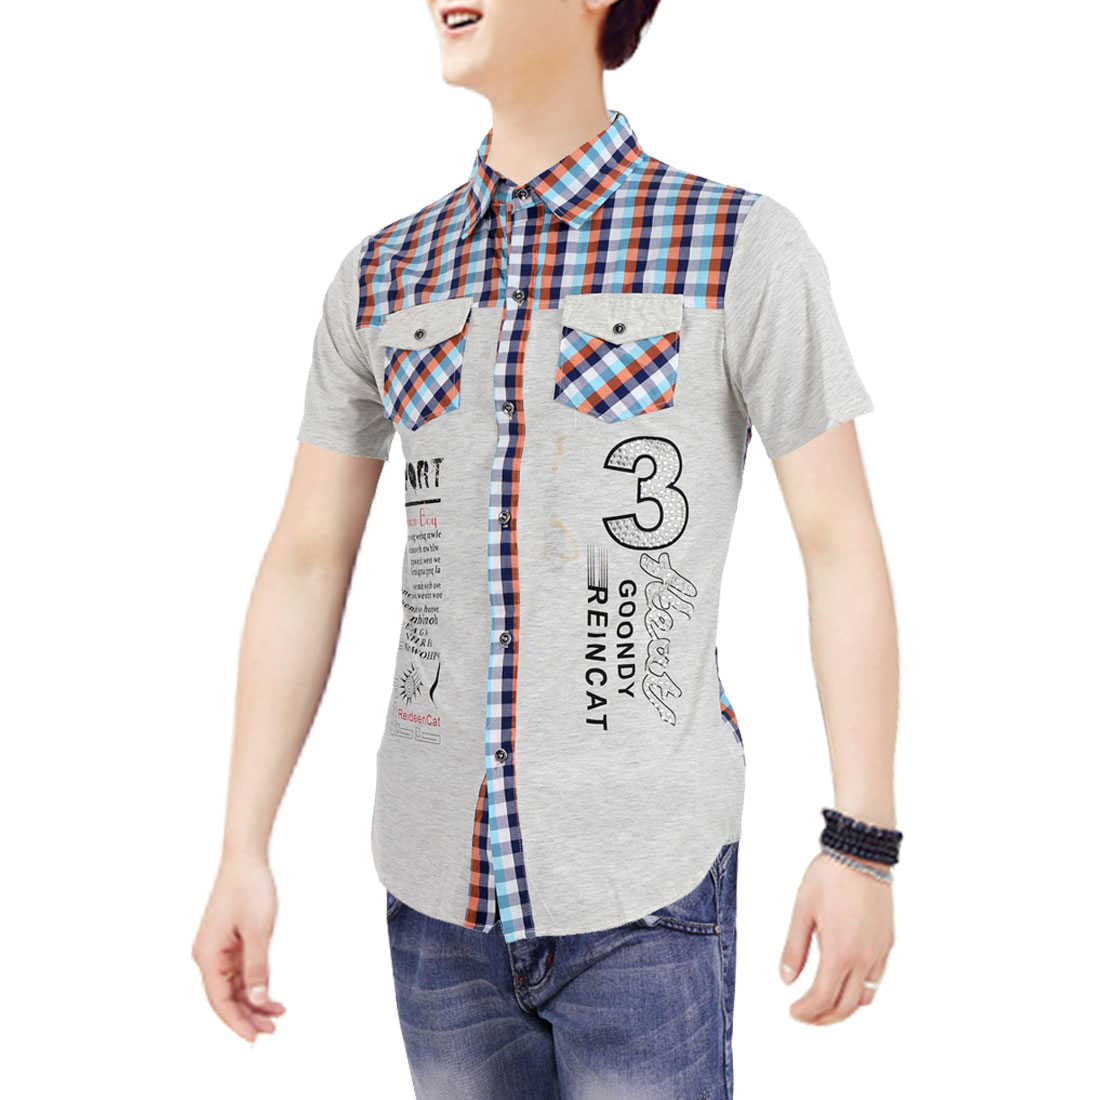 Men Point Collar Short Sleeve Letter Prints Shirt Light Blue Light Gray M